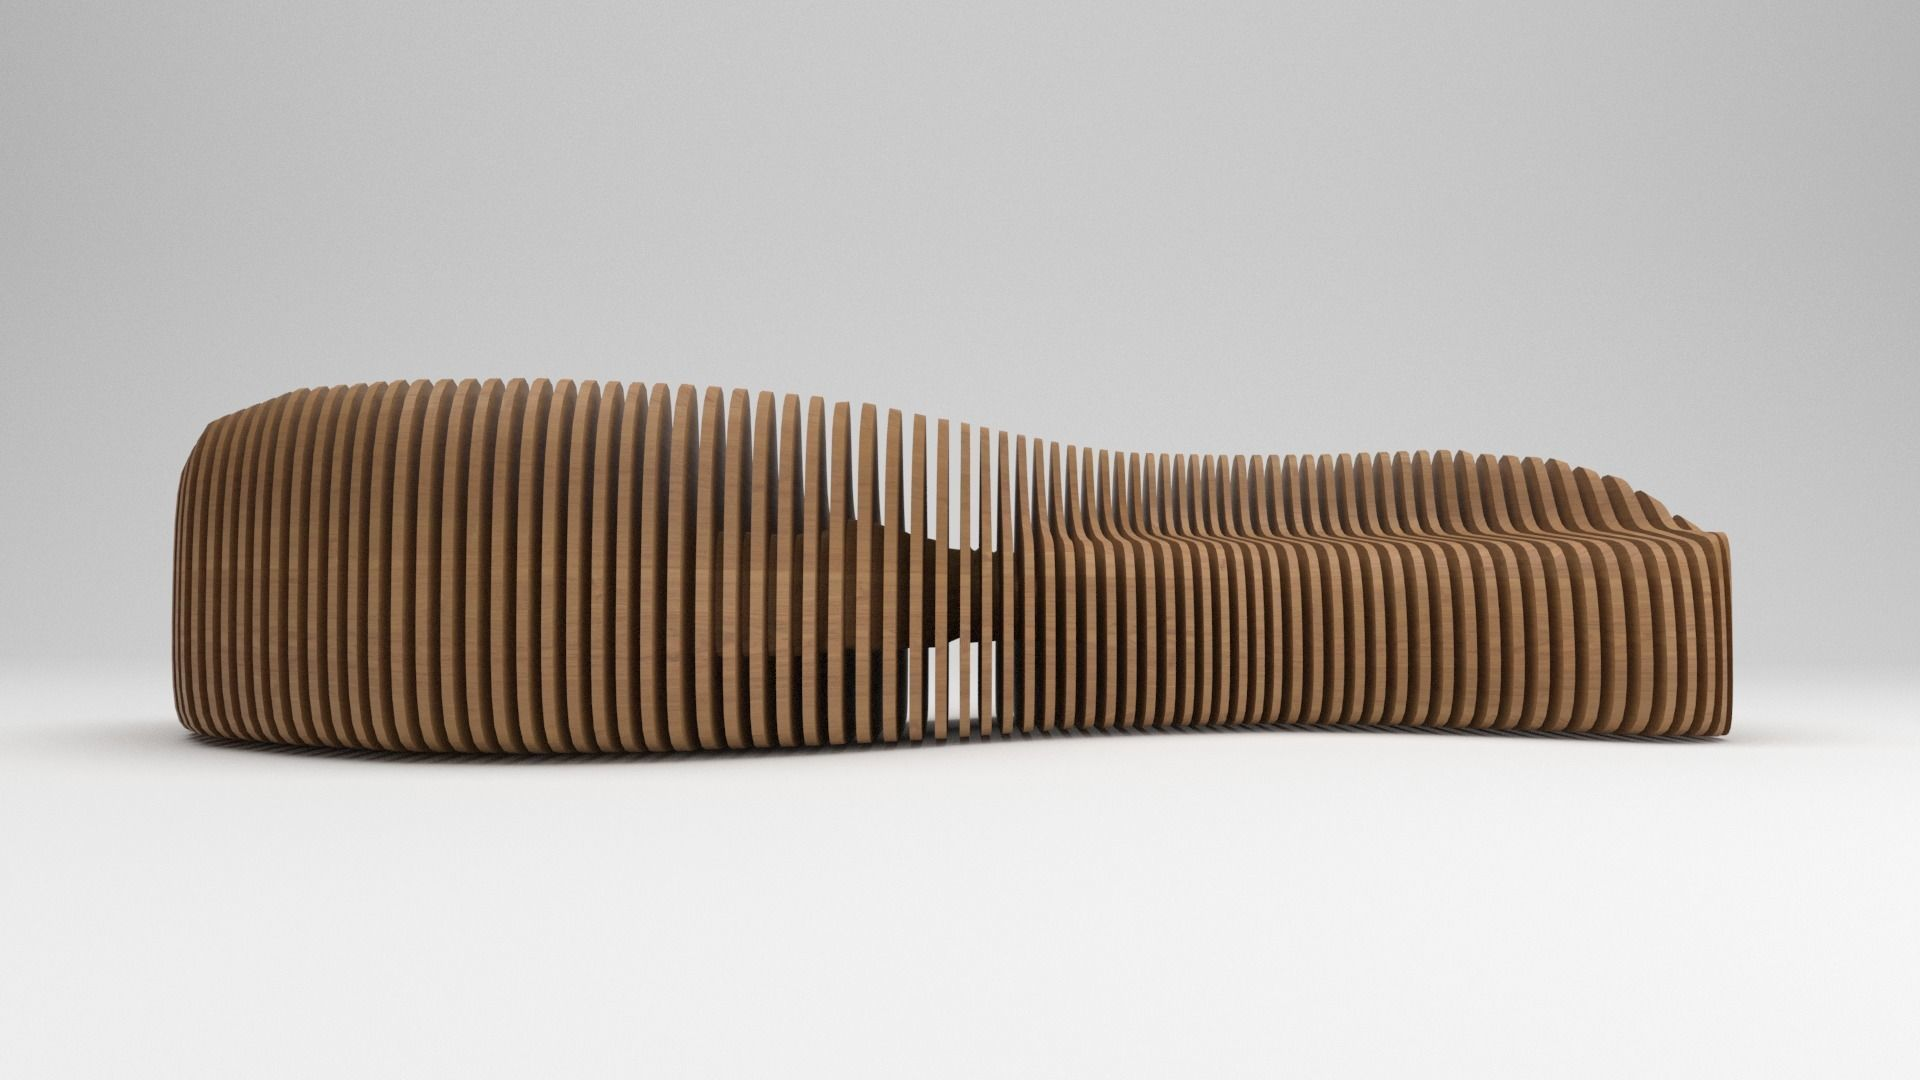 Parametric wooden bench